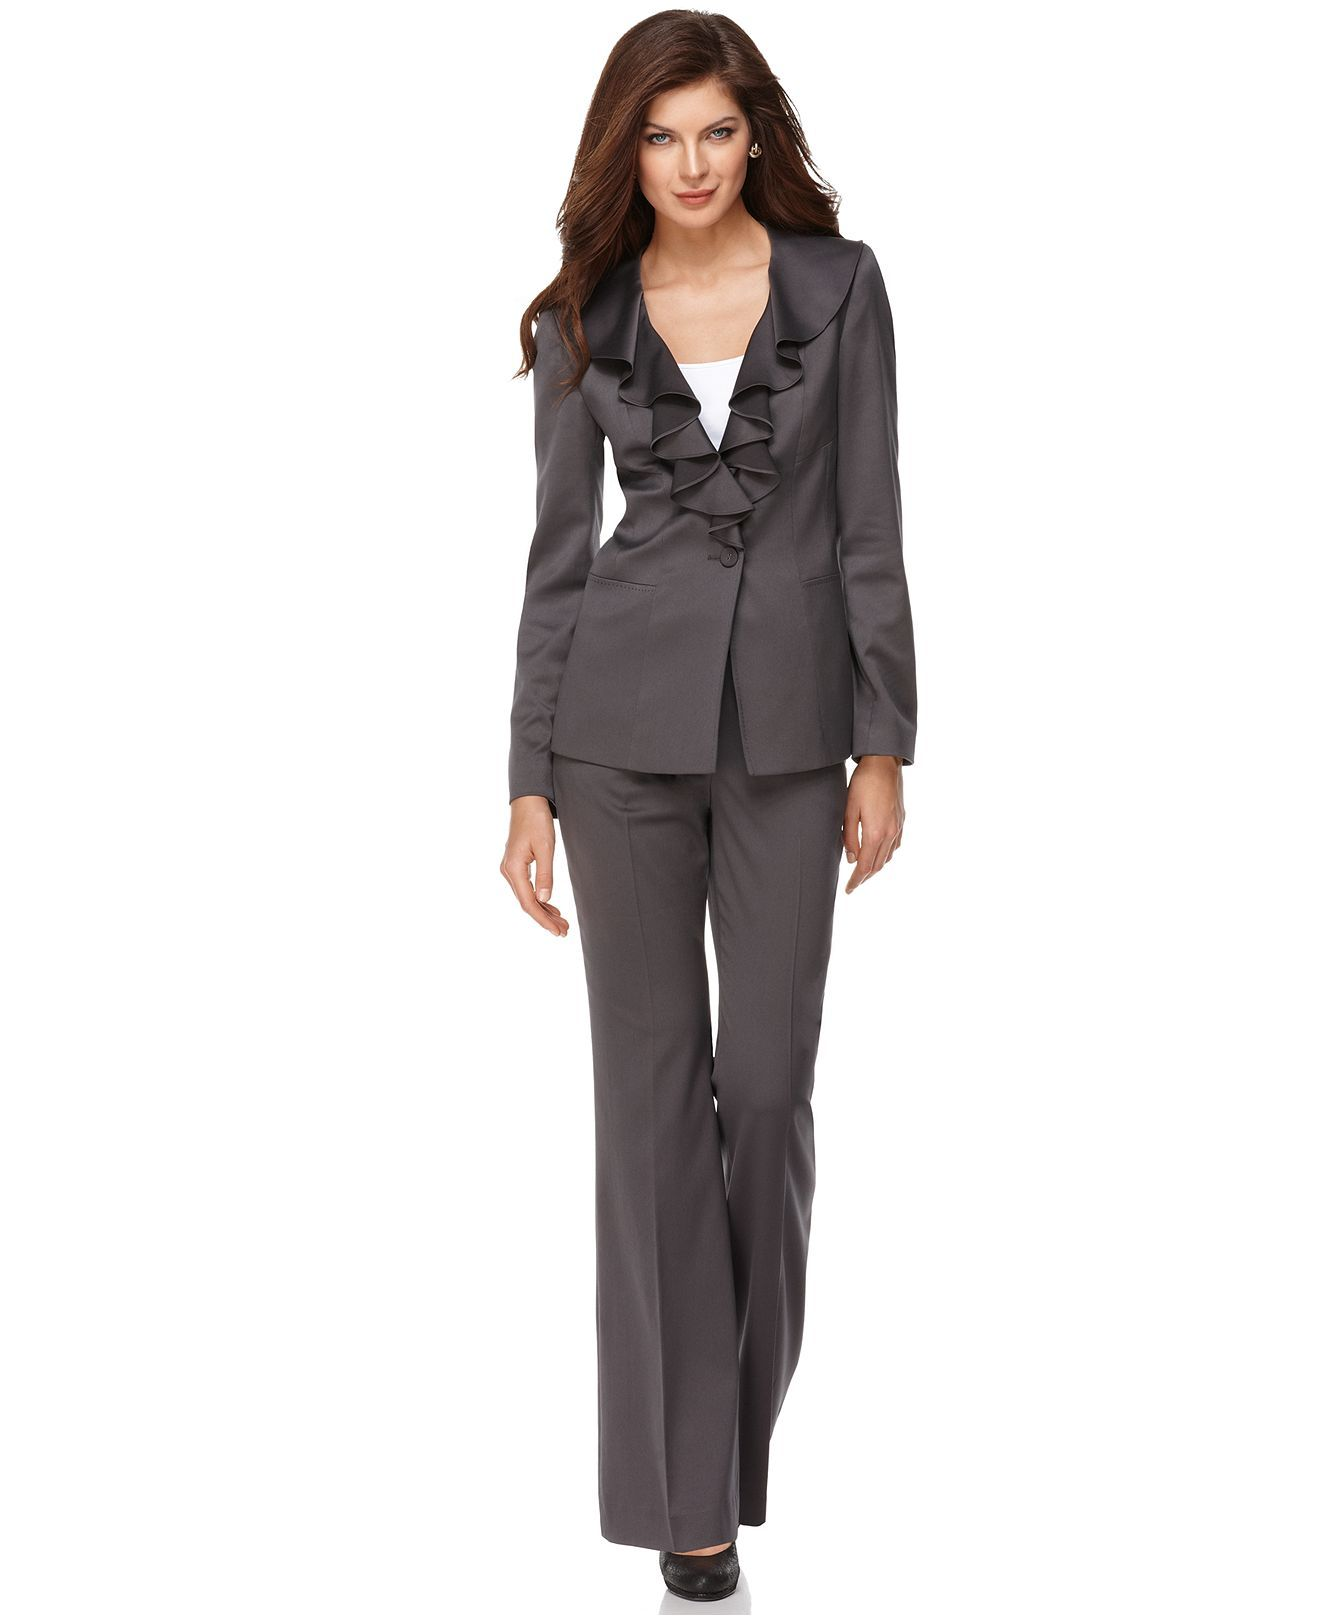 Pin By Esther Chae Von Zielbauer On Arko Outfit Suits For Women Single Button Jacket Business Attire Women [ 1616 x 1320 Pixel ]